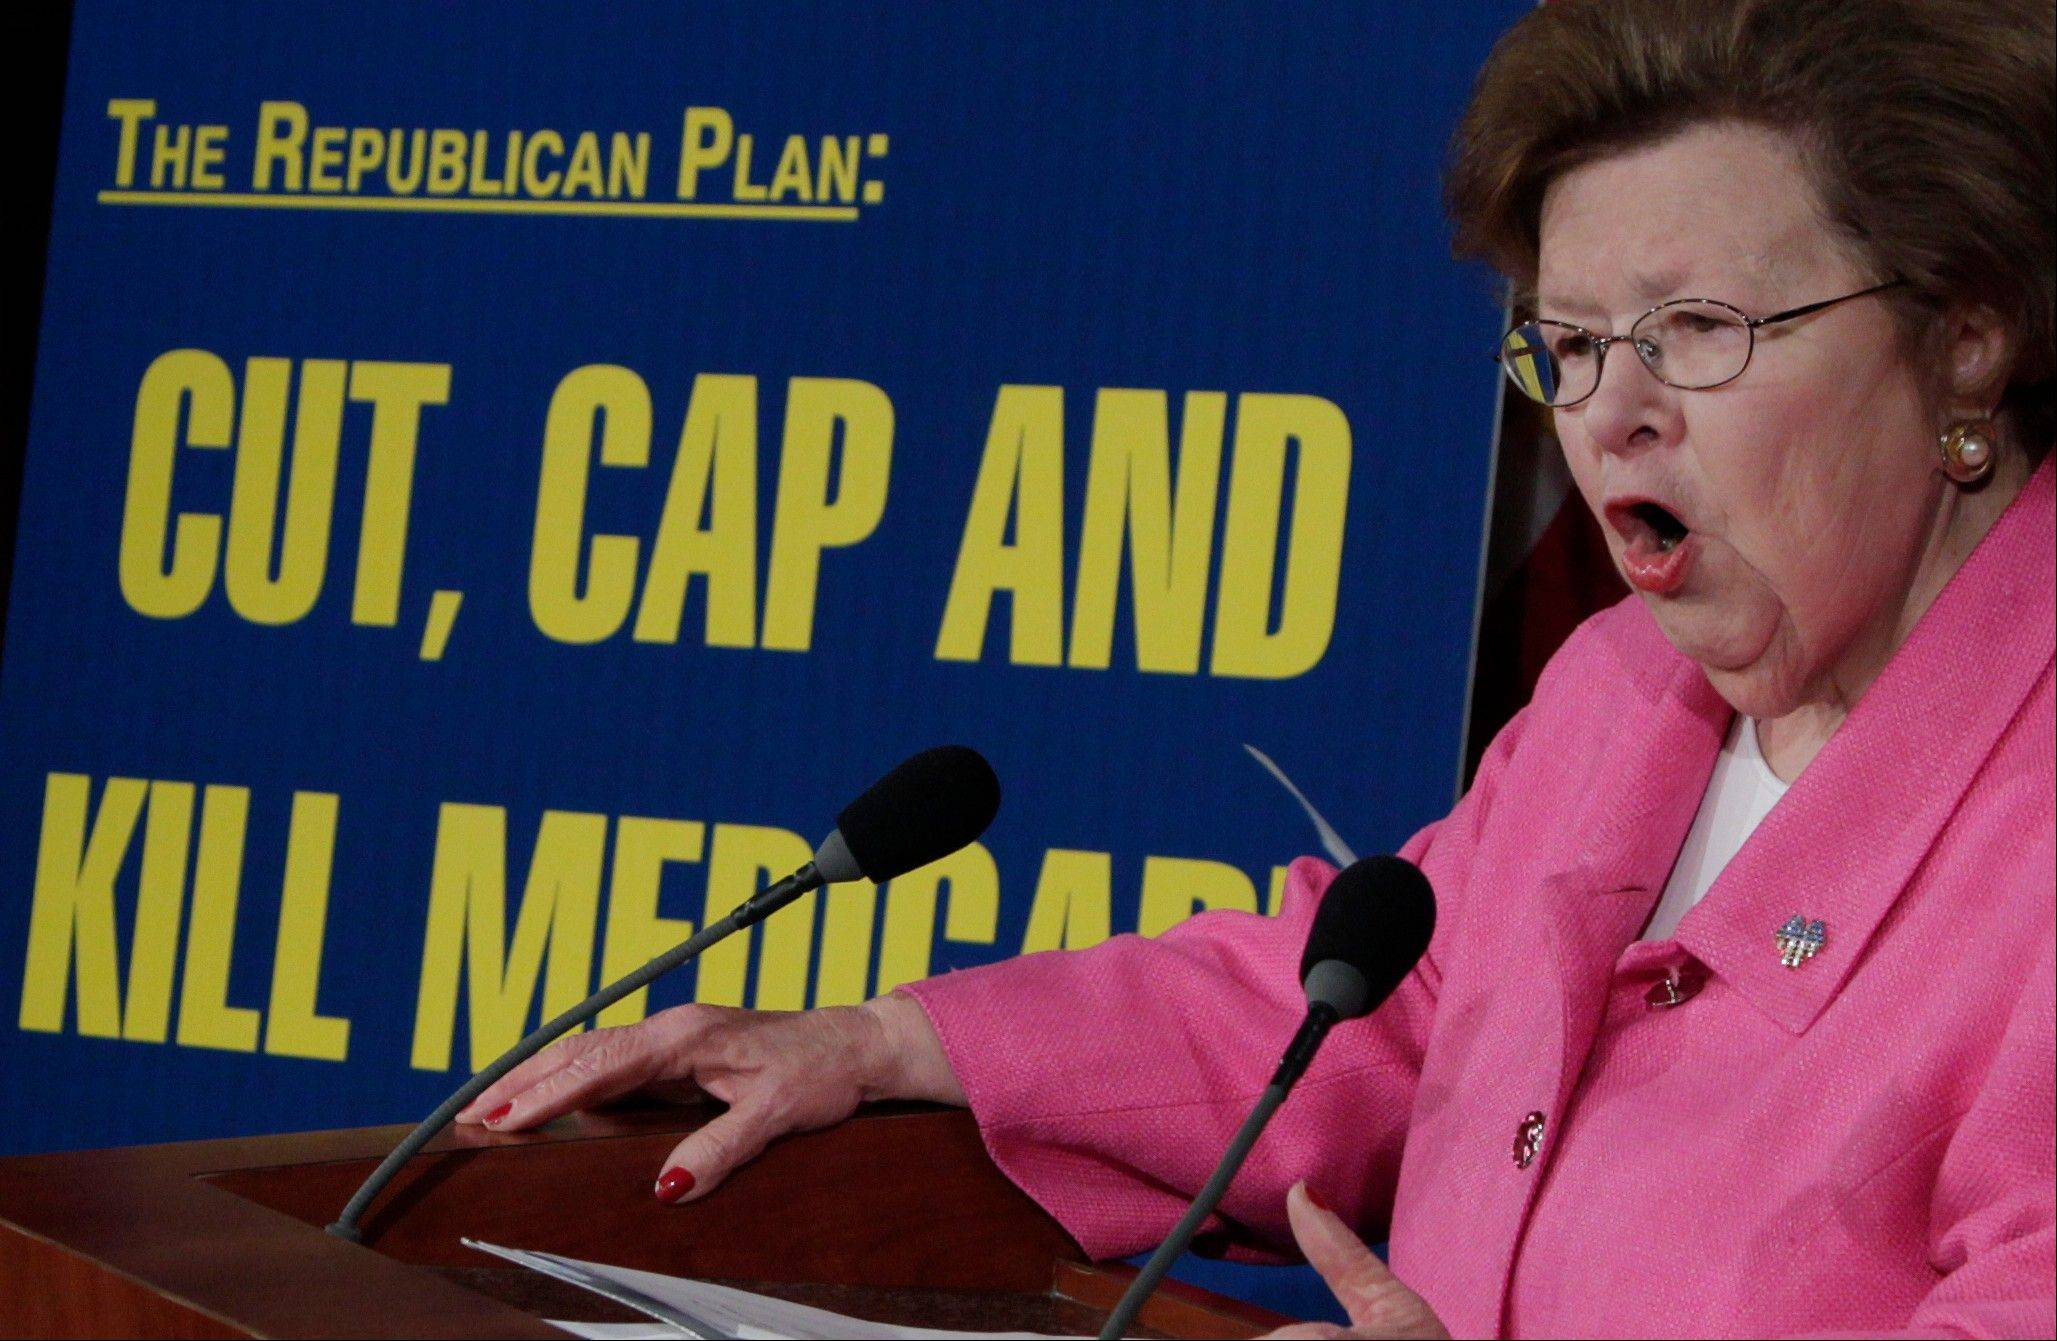 Sen. Barbara Mikulski, a Maryland Democrat, speaks during a news conference to denounce House Republicans� �Cut, Cap, and Balance Act� Wednesday on Capitol Hill.